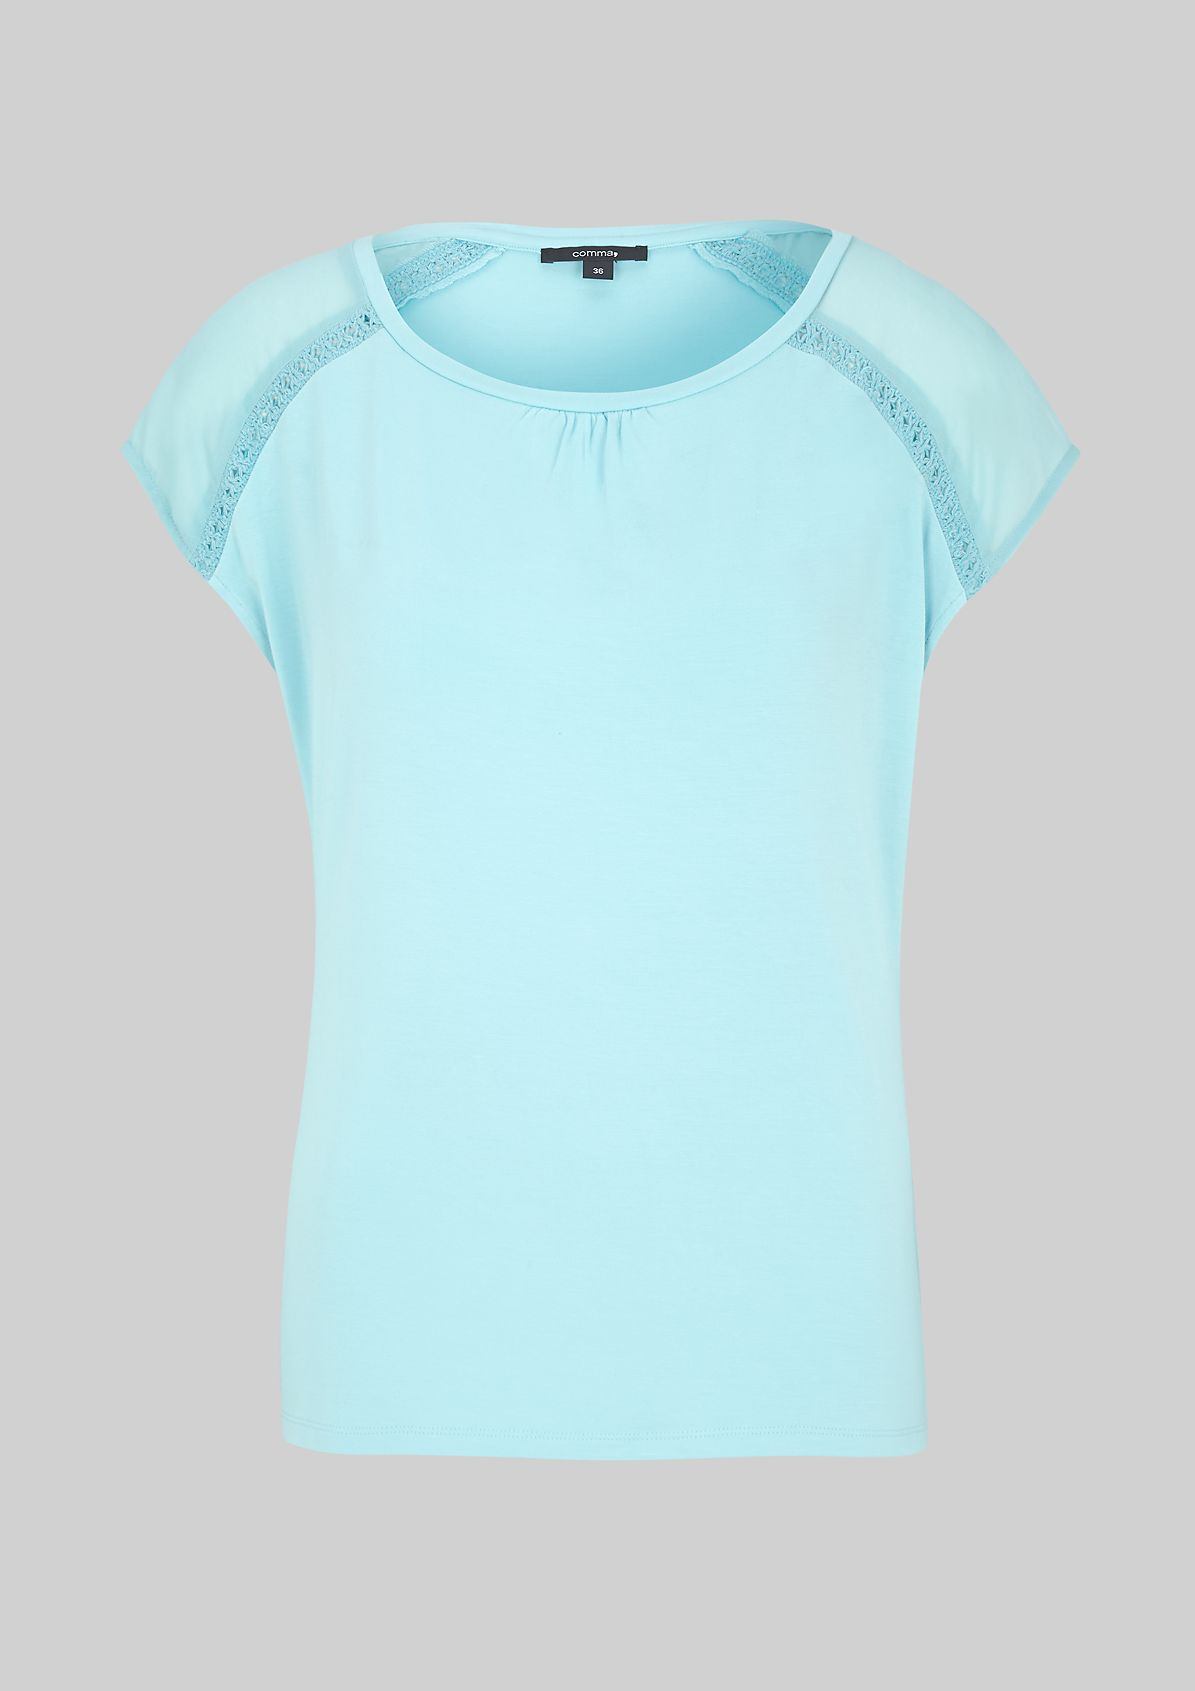 Summery short sleeve T-shirt with sophisticated details from s.Oliver